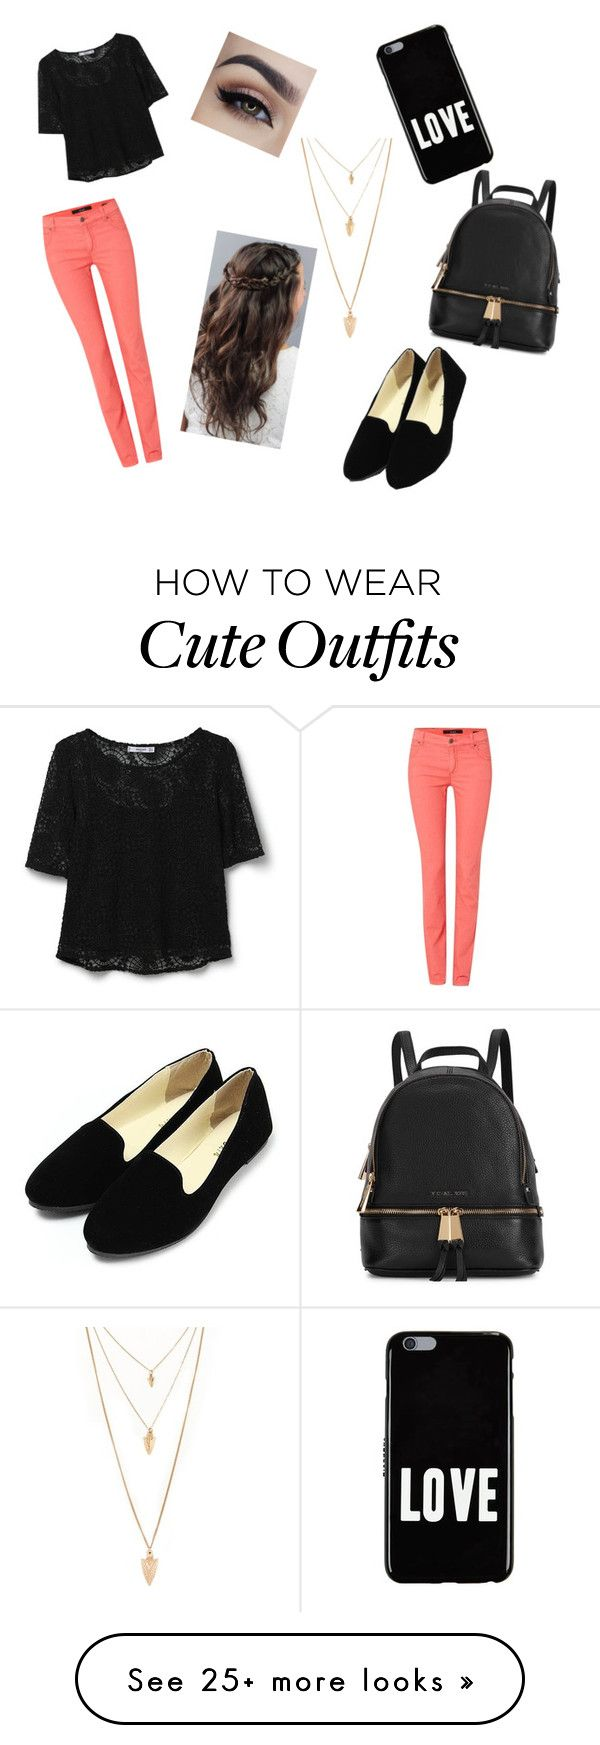 """Cute school outfit"" by ghouse-arzoo on Polyvore featuring MANGO, Oui, Givenchy, Forever 21 and Michael Kors"